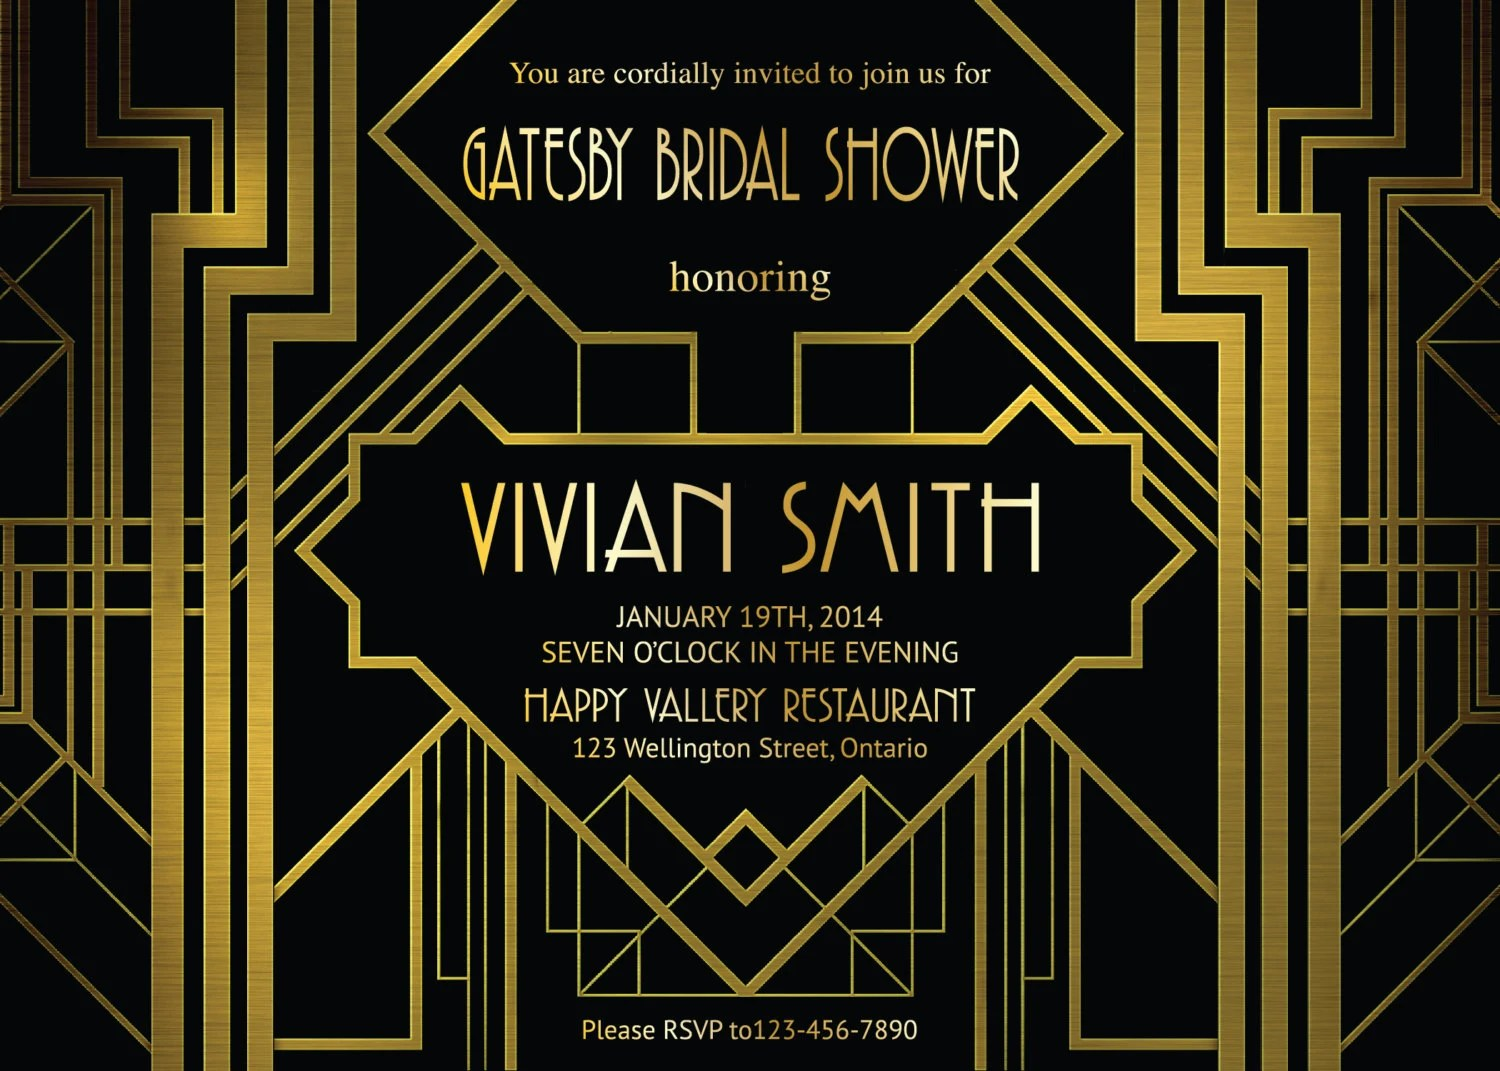 great gatsby invites great gatsby wedding invitations Great Gatsby Bridal Shower Invitation Art Deco Customized party invites Printable Digital DIY